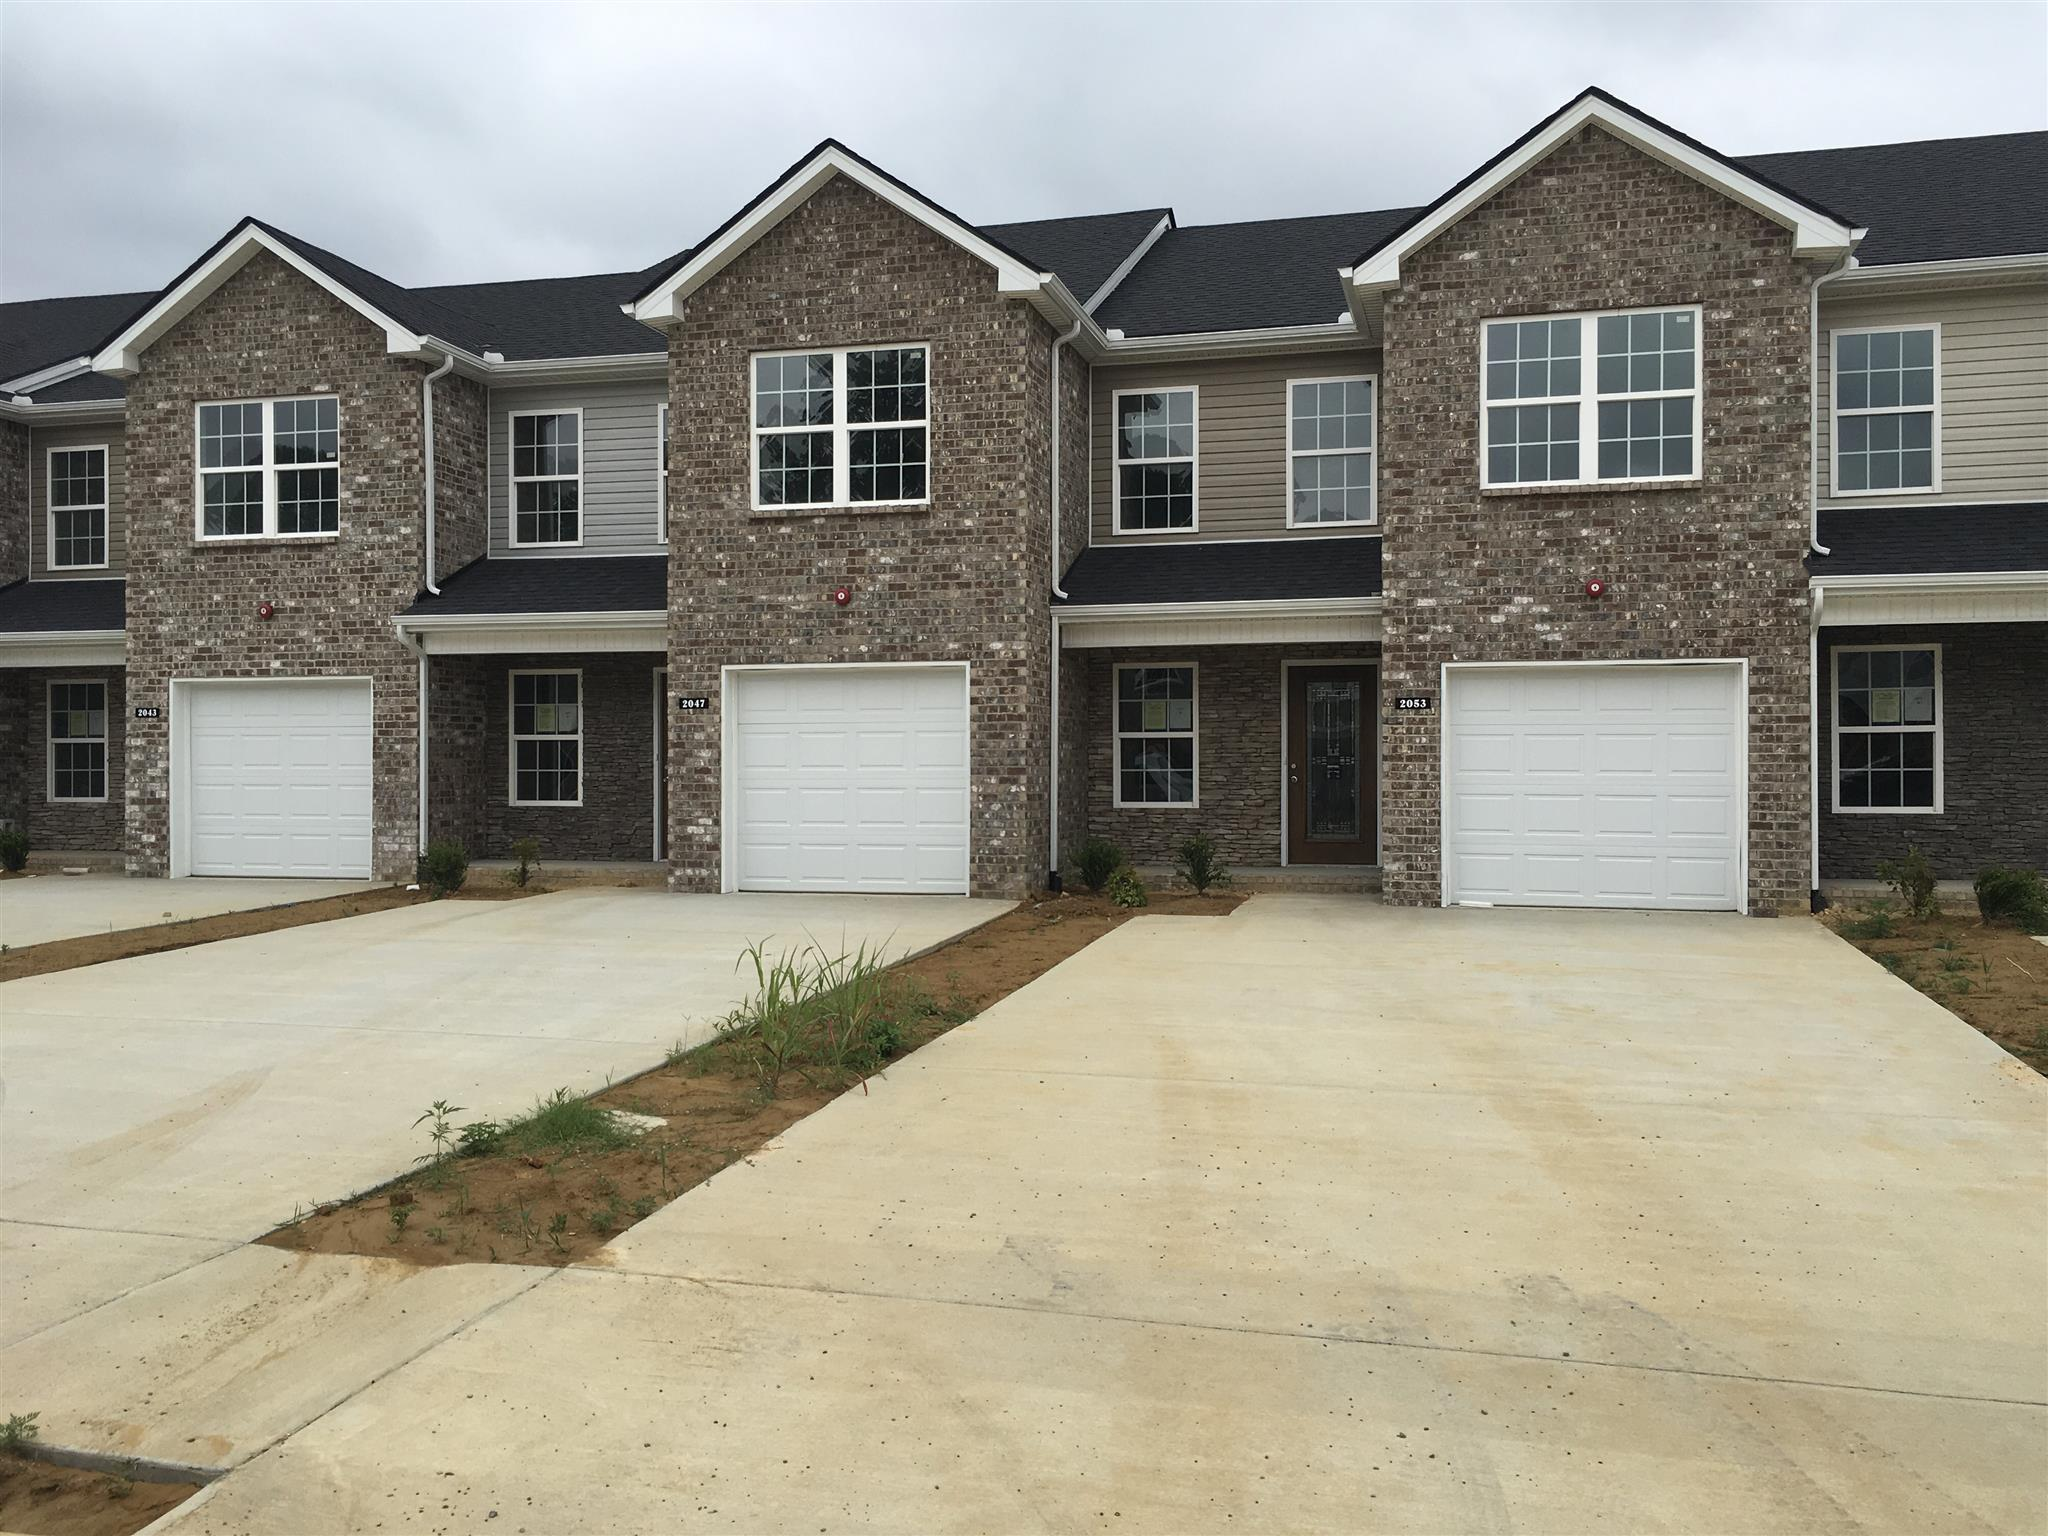 2053 Downstream Drive, Ashland City, TN 37015 - Ashland City, TN real estate listing